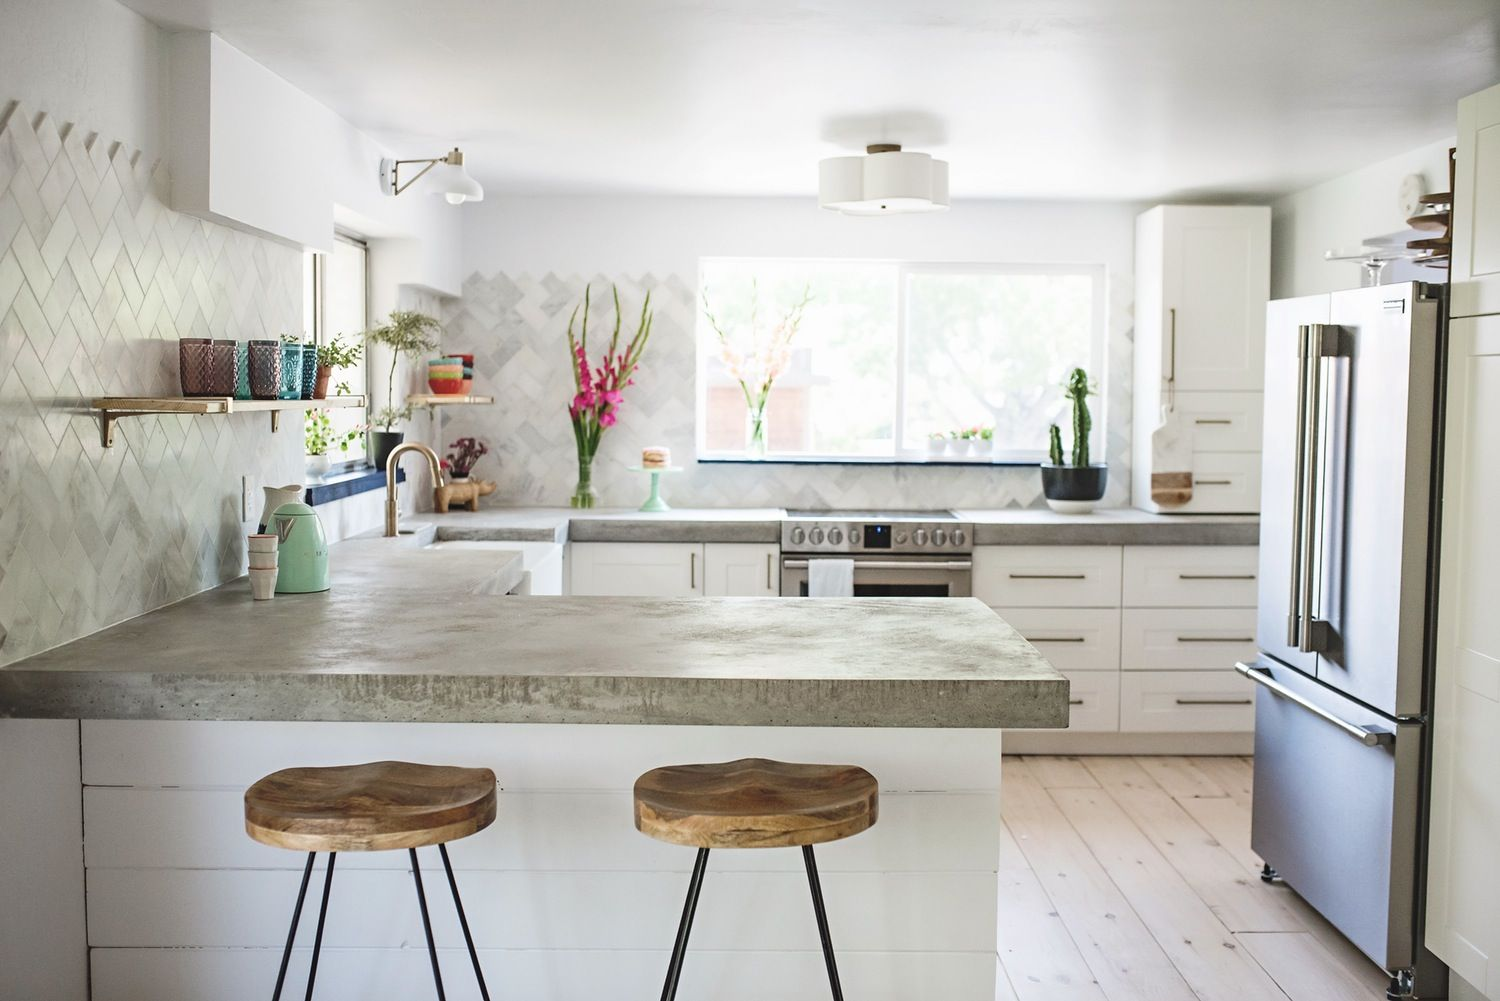 Kitchen Crush of the Week: A Space Built from Scratch | Crushes ...